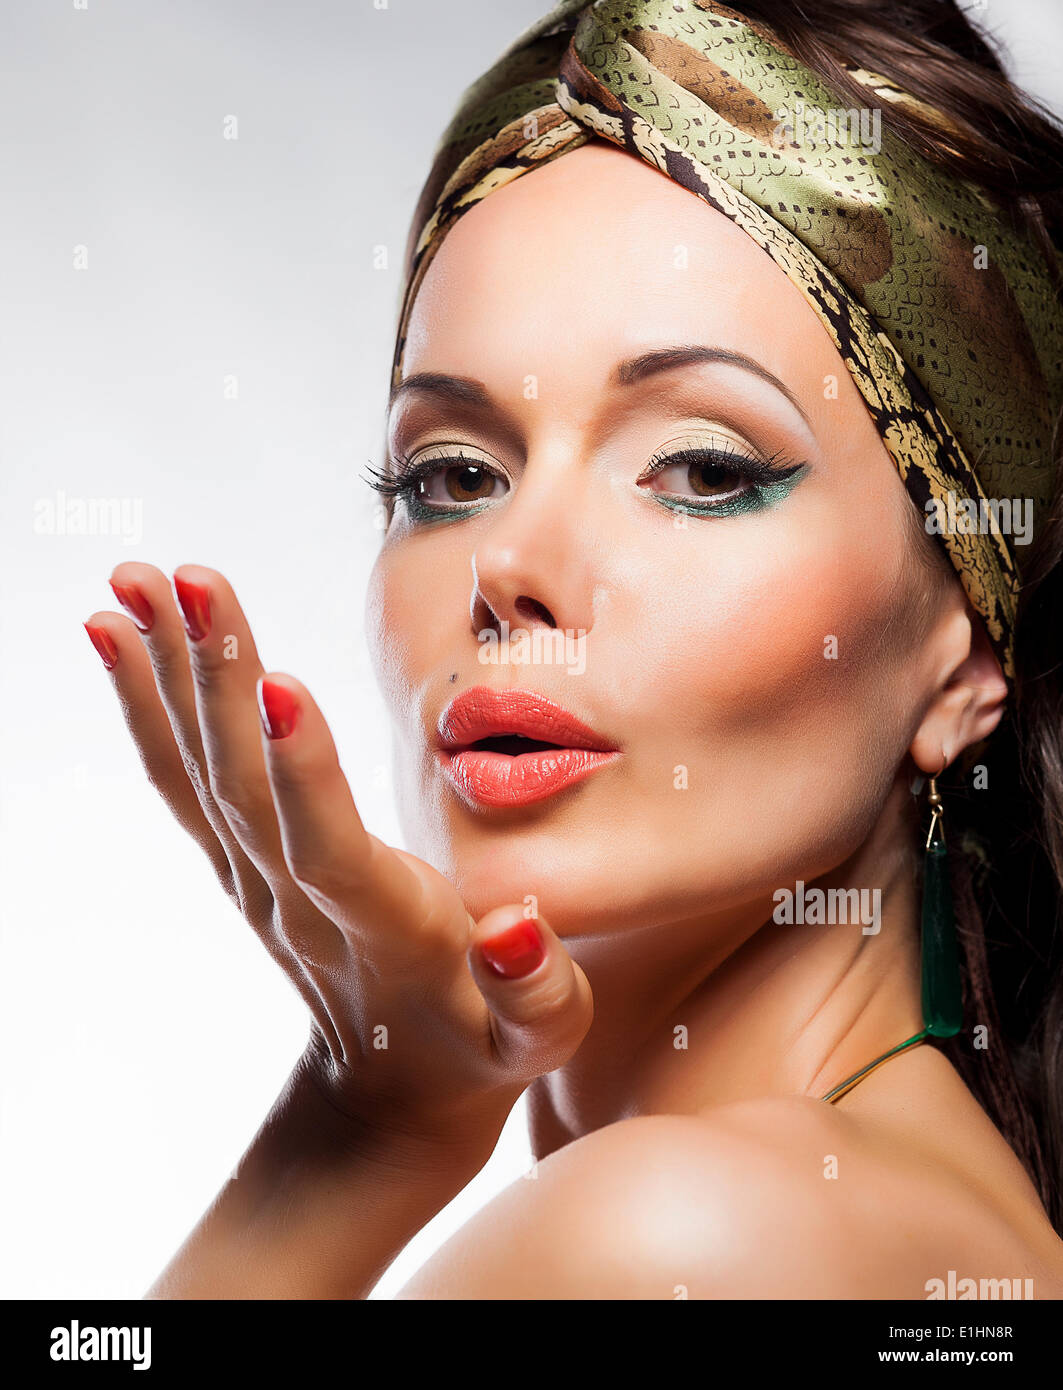 Fashion style oriental. Belle femme visage magique. Blowing a kiss Photo Stock